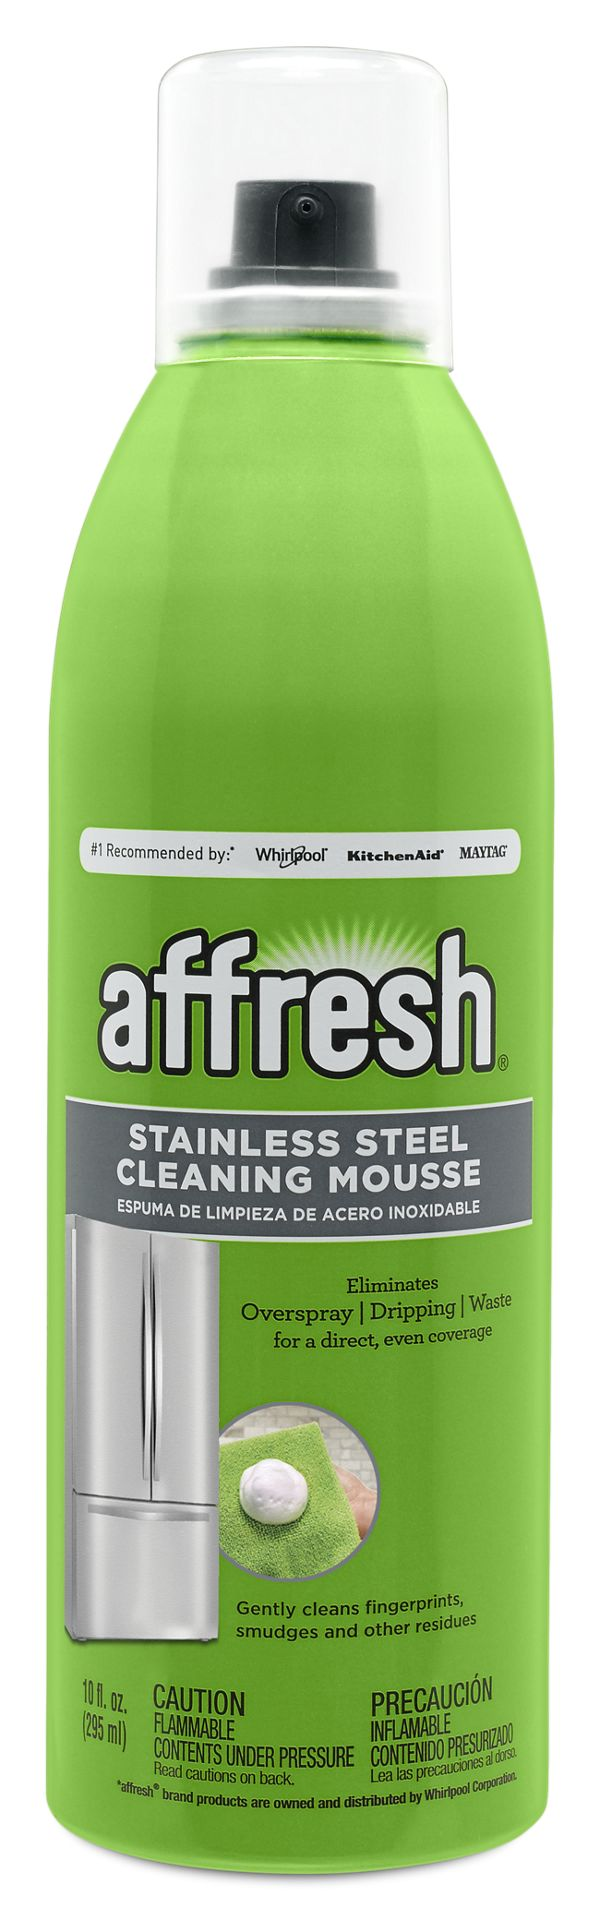 Affresh® Stainless Steel Cleaning Mousse